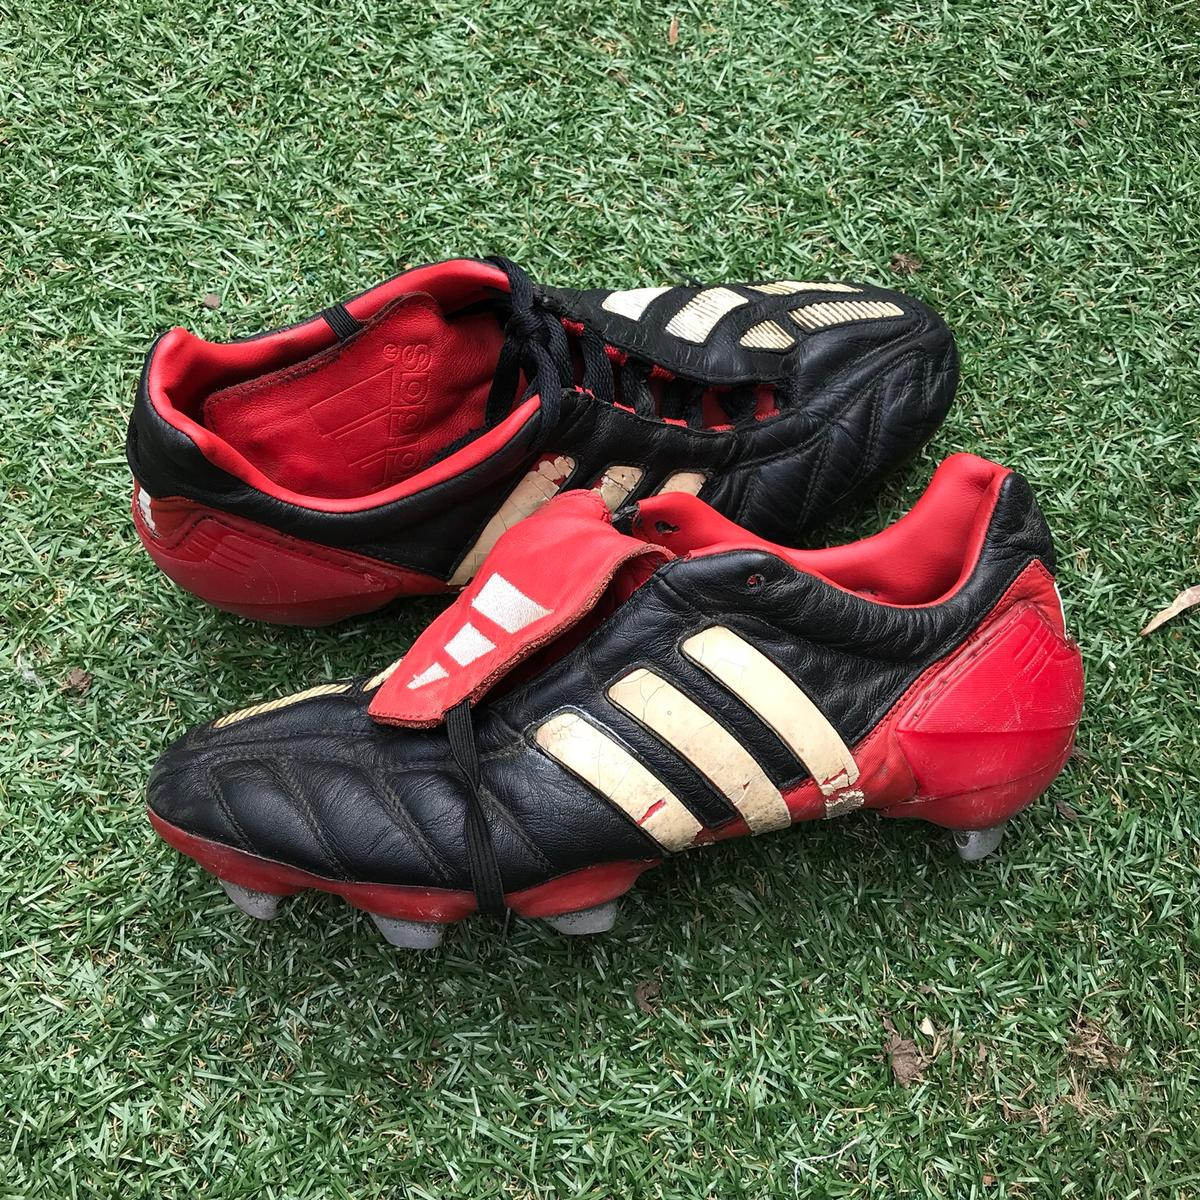 Adidas predator mania 2002 World Cup boot in L35 Helens for